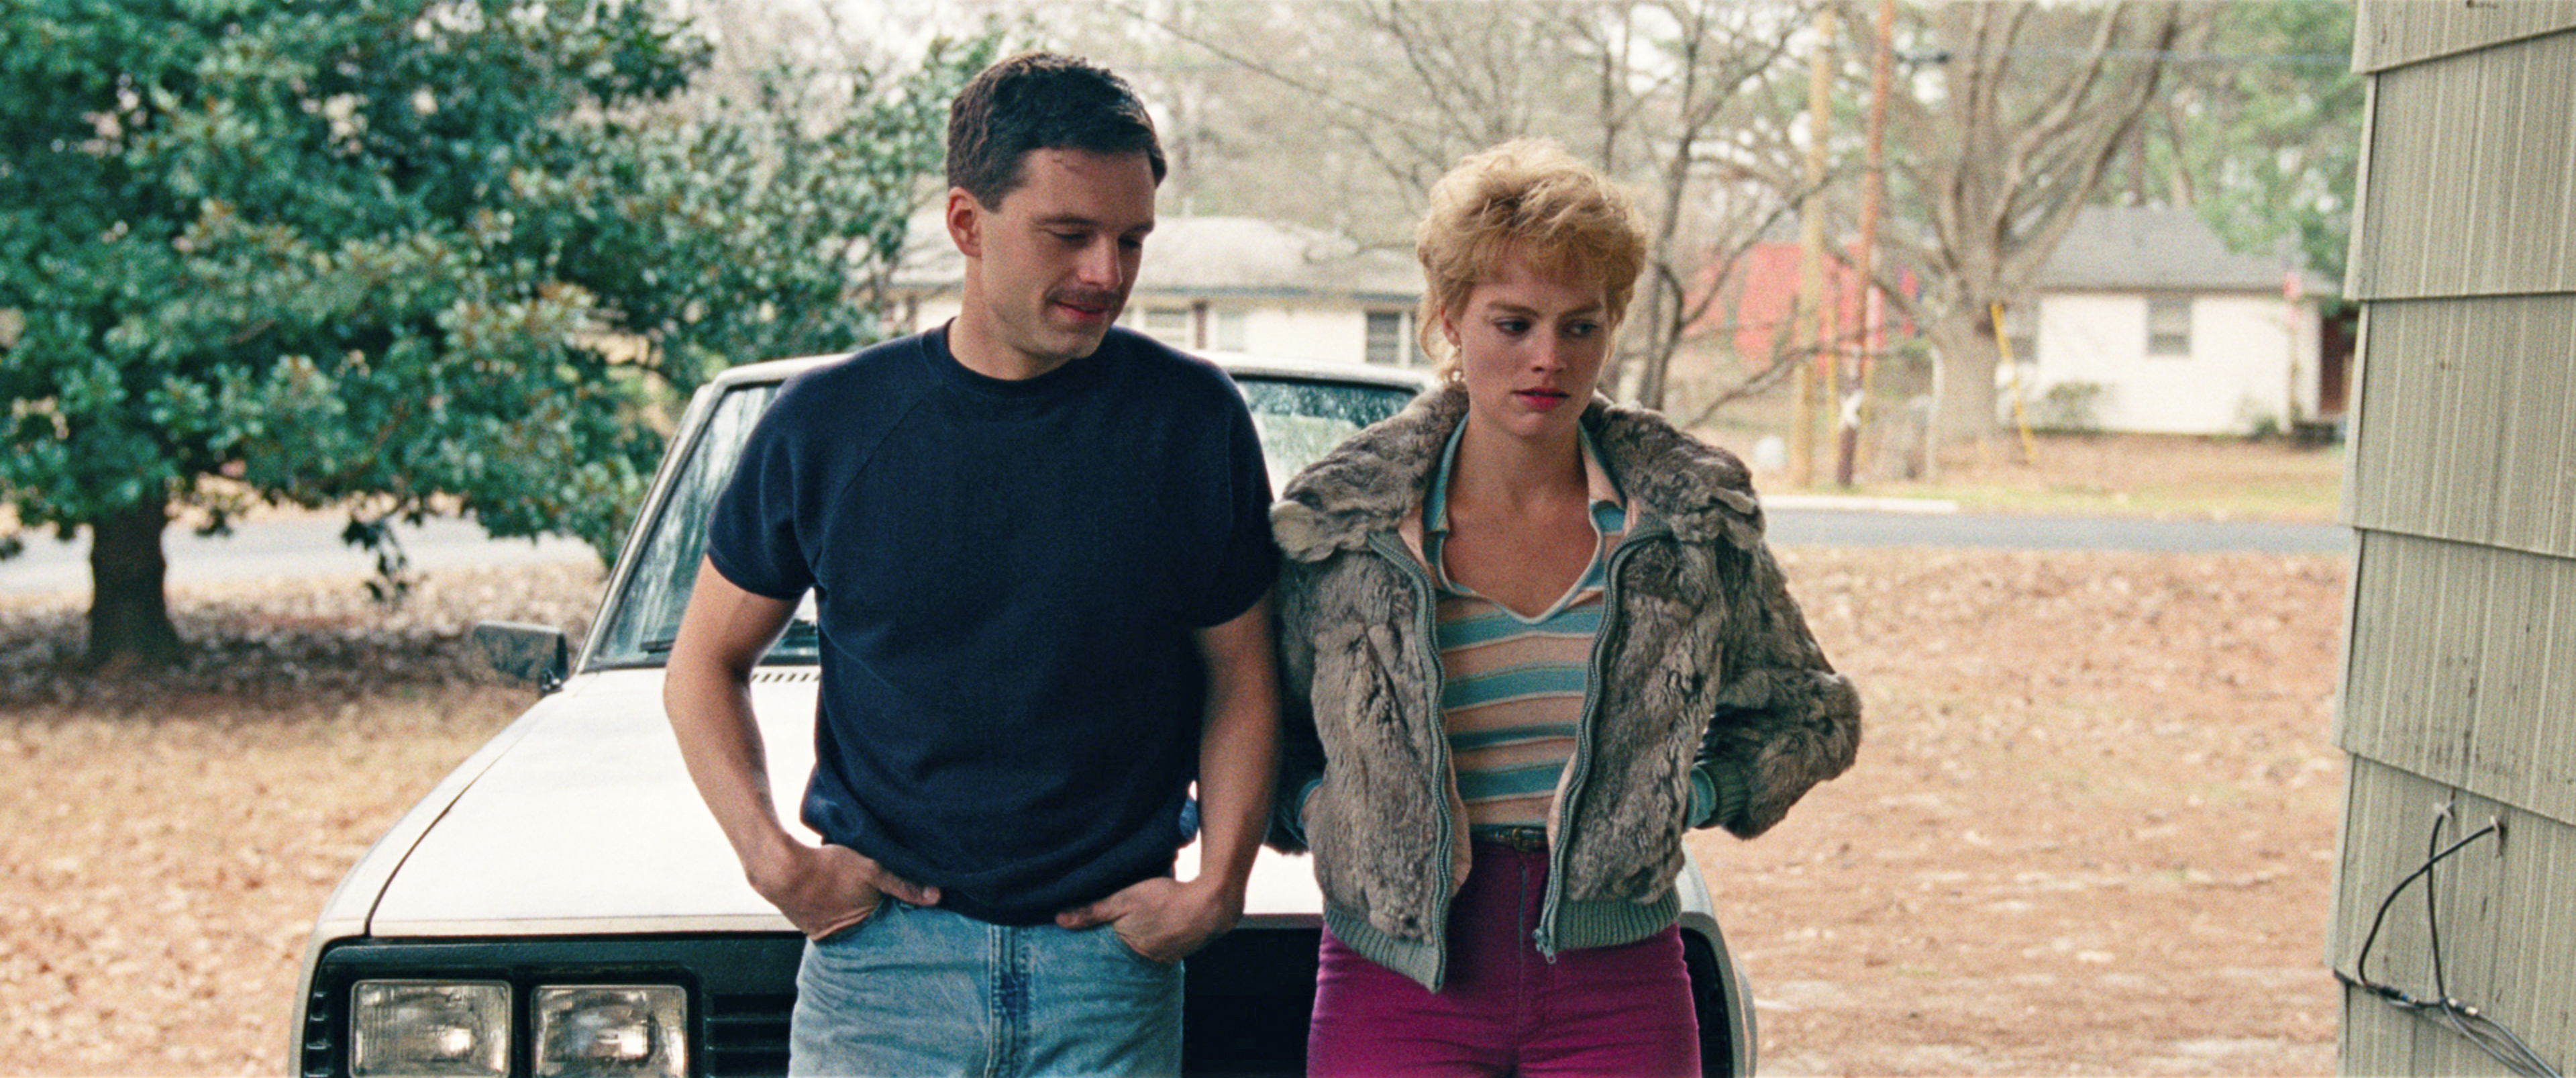 6-Young Tonya Harding (Margot Robbie) and Jeff Gillooly (Sebastian Stan) in I, TONYA, courtesy of NE